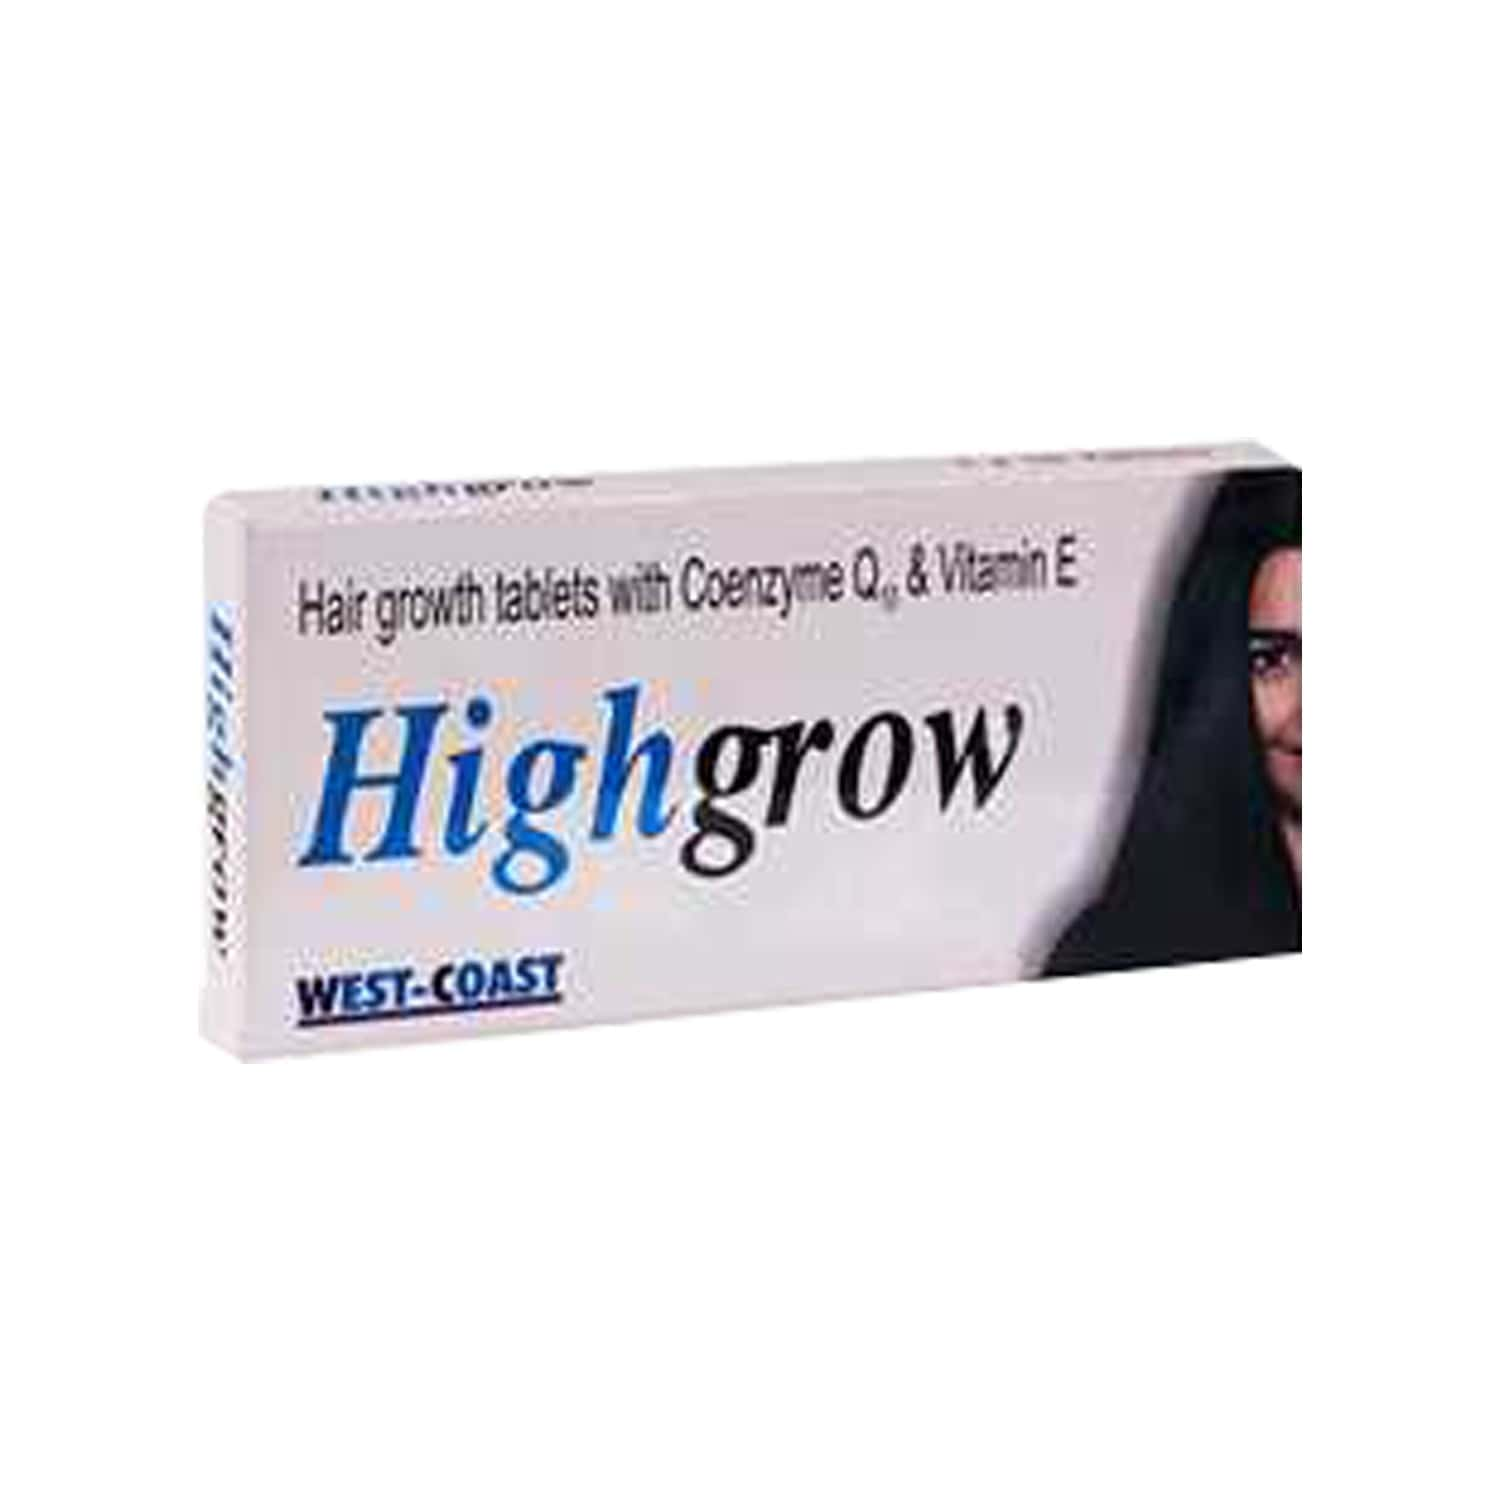 Highgrow  Hair Growth Tablets  Bottle Of 30 (pack Of 3)